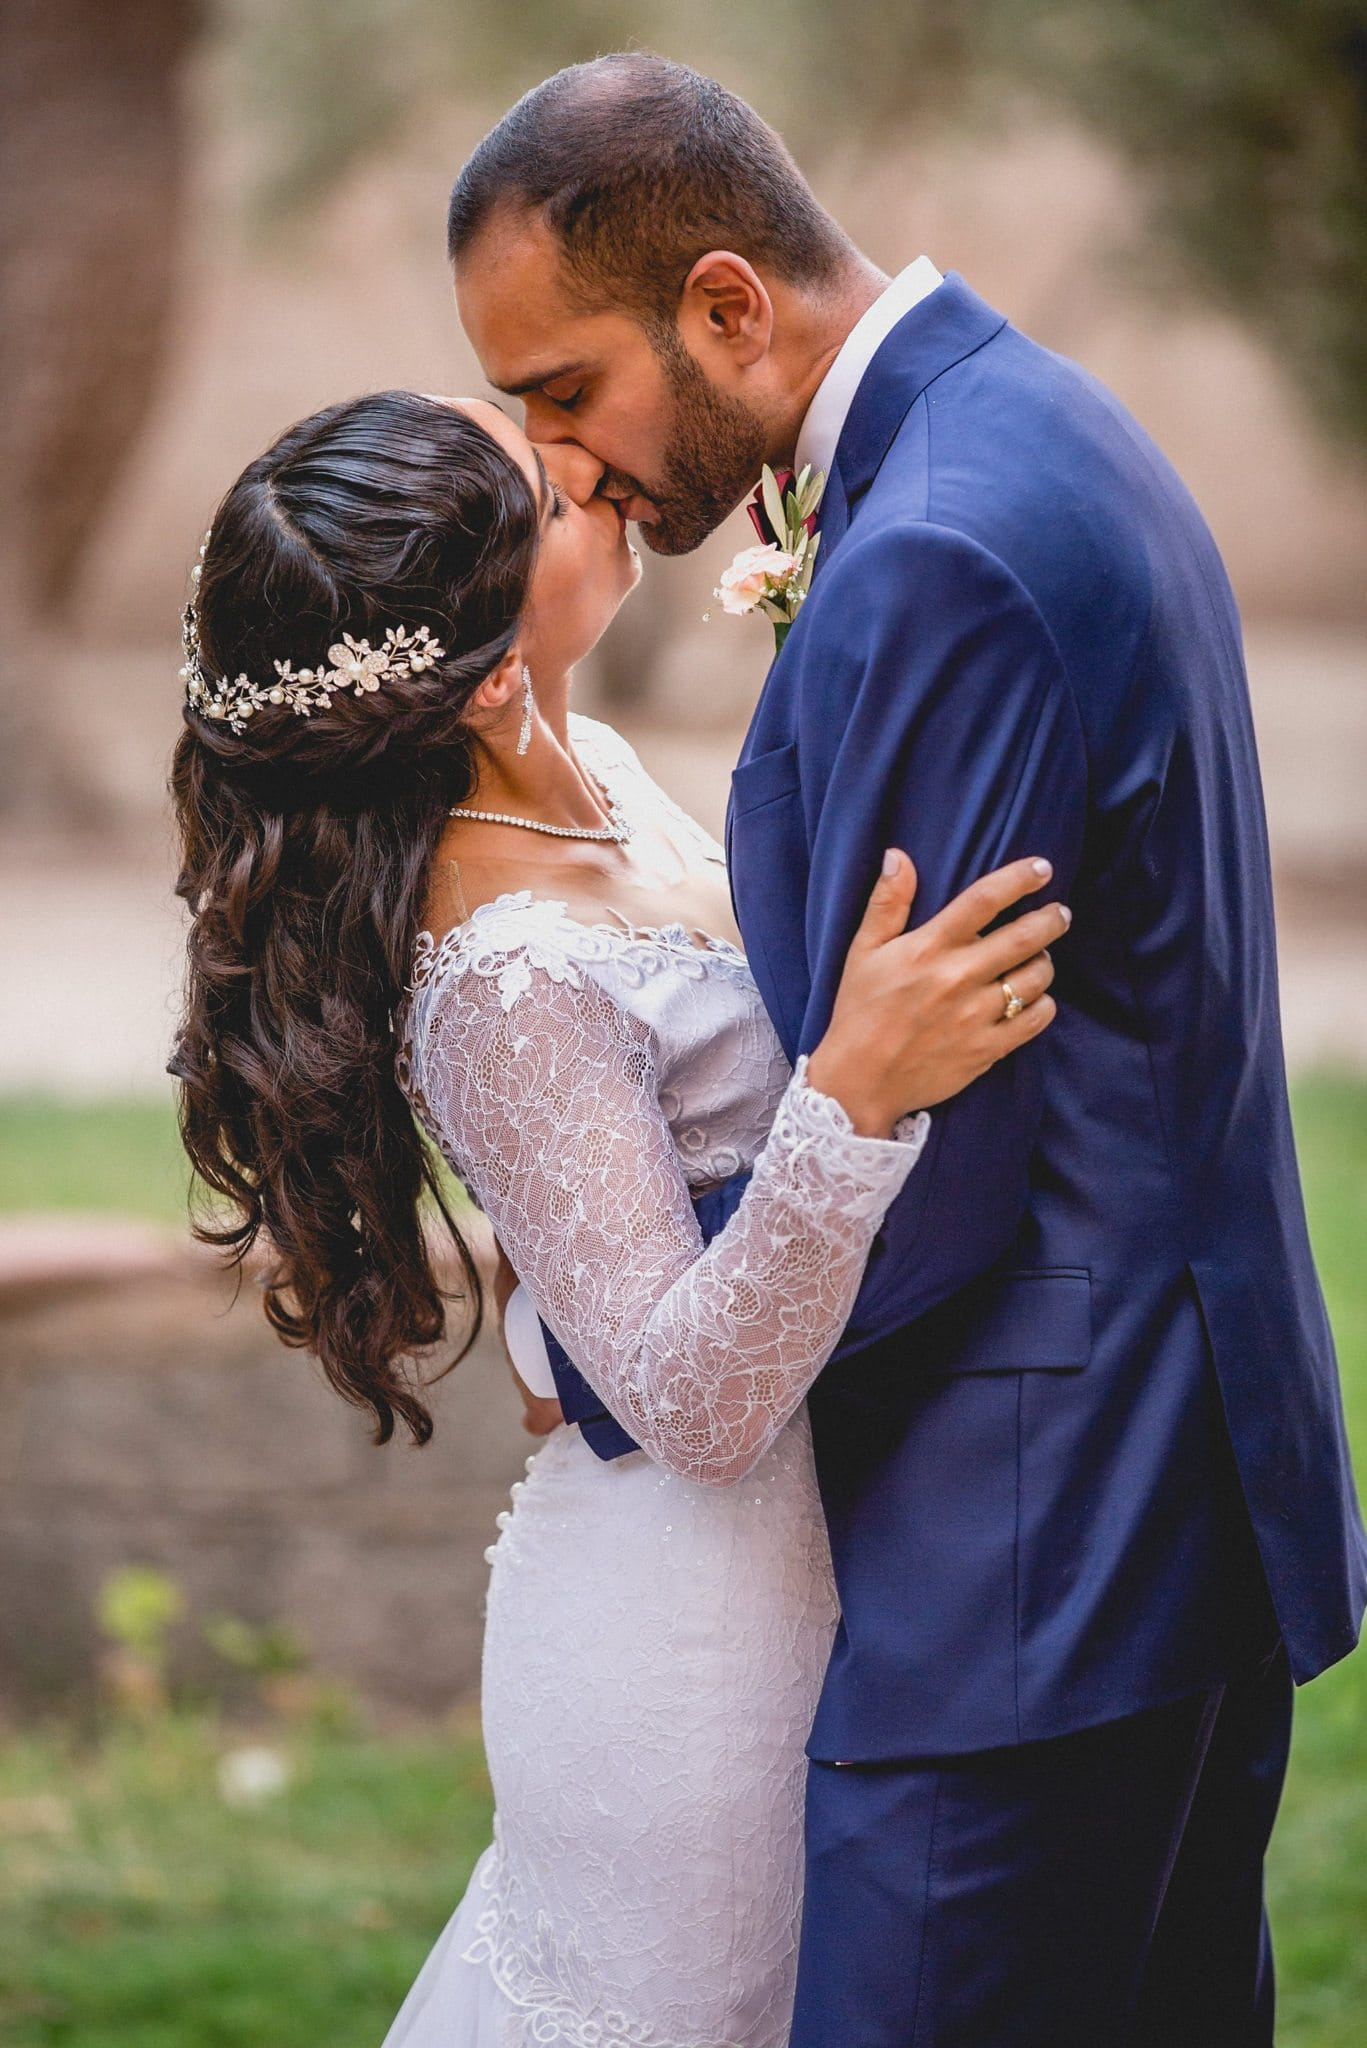 The wedding couple kiss deeply during their portrait session.